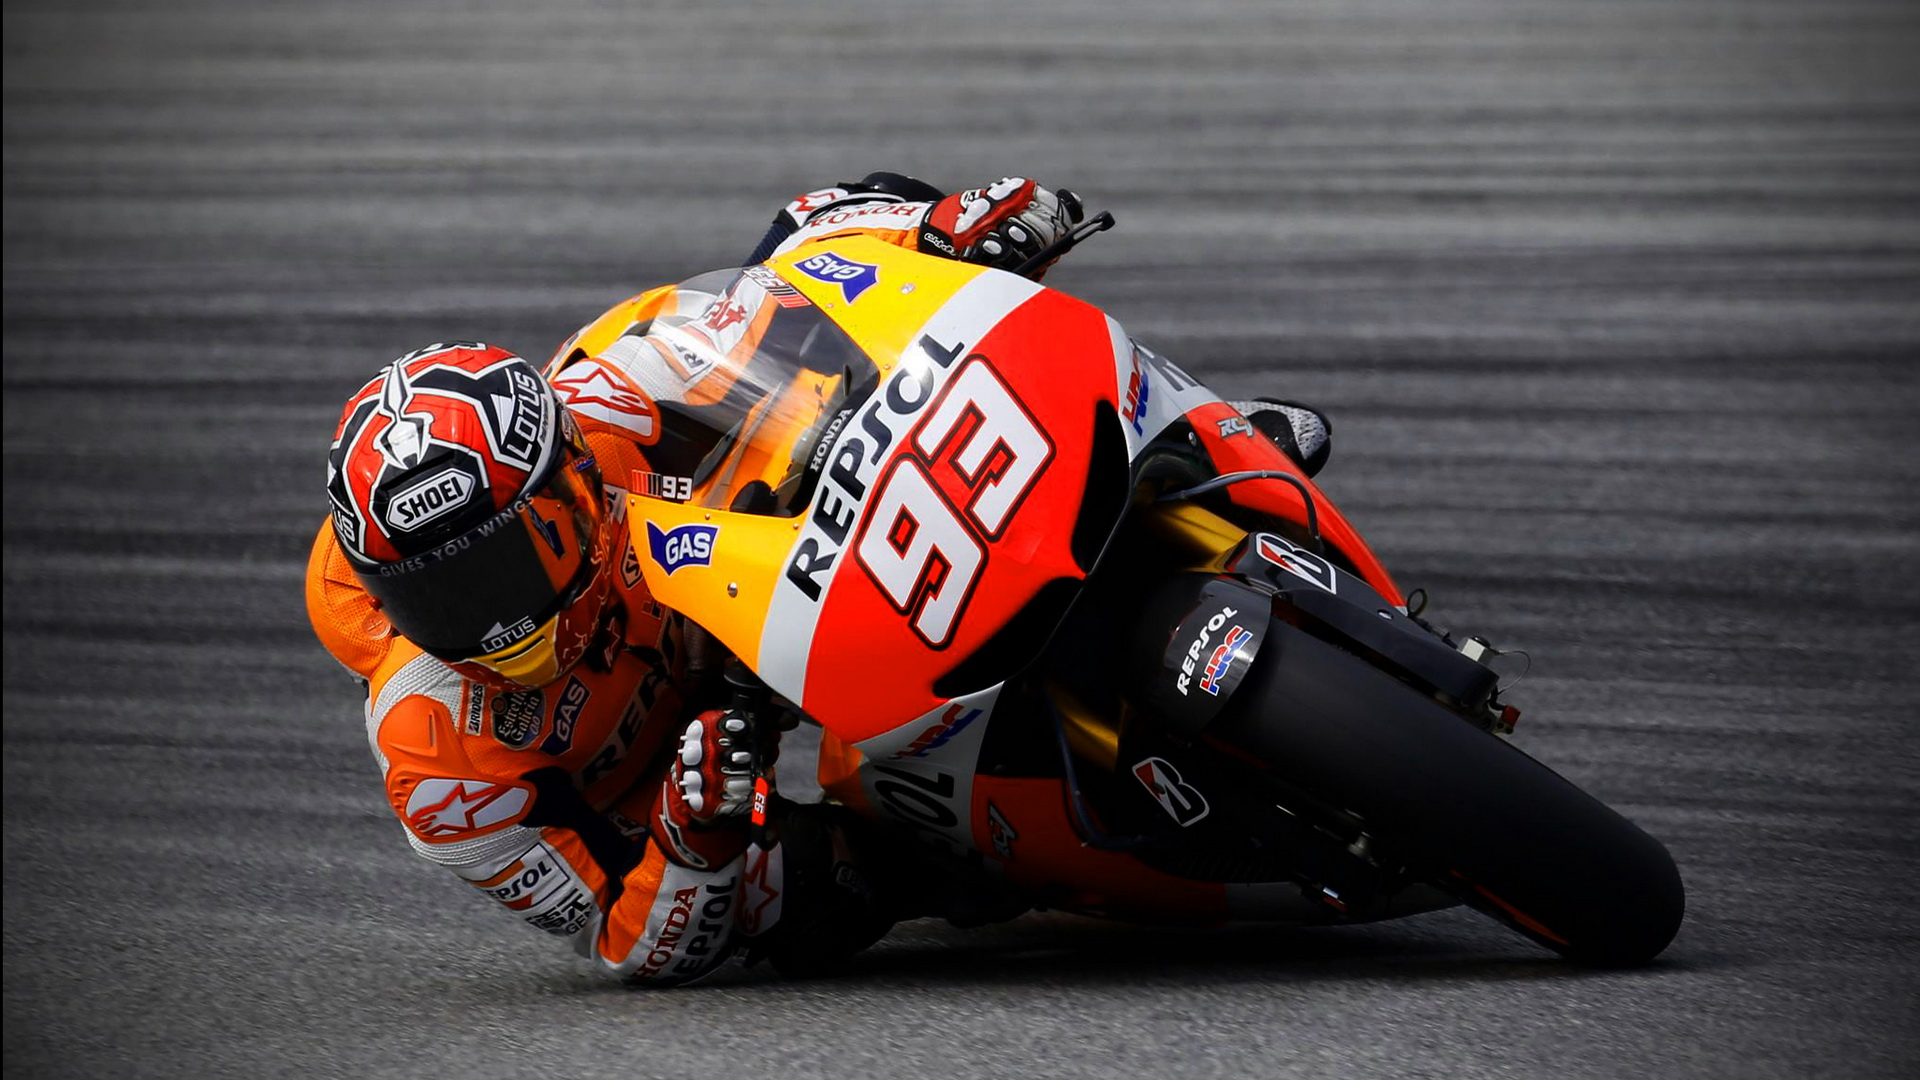 Marc Marquez MotoGP Wallpaper | Wide Screen Wallpaper ...